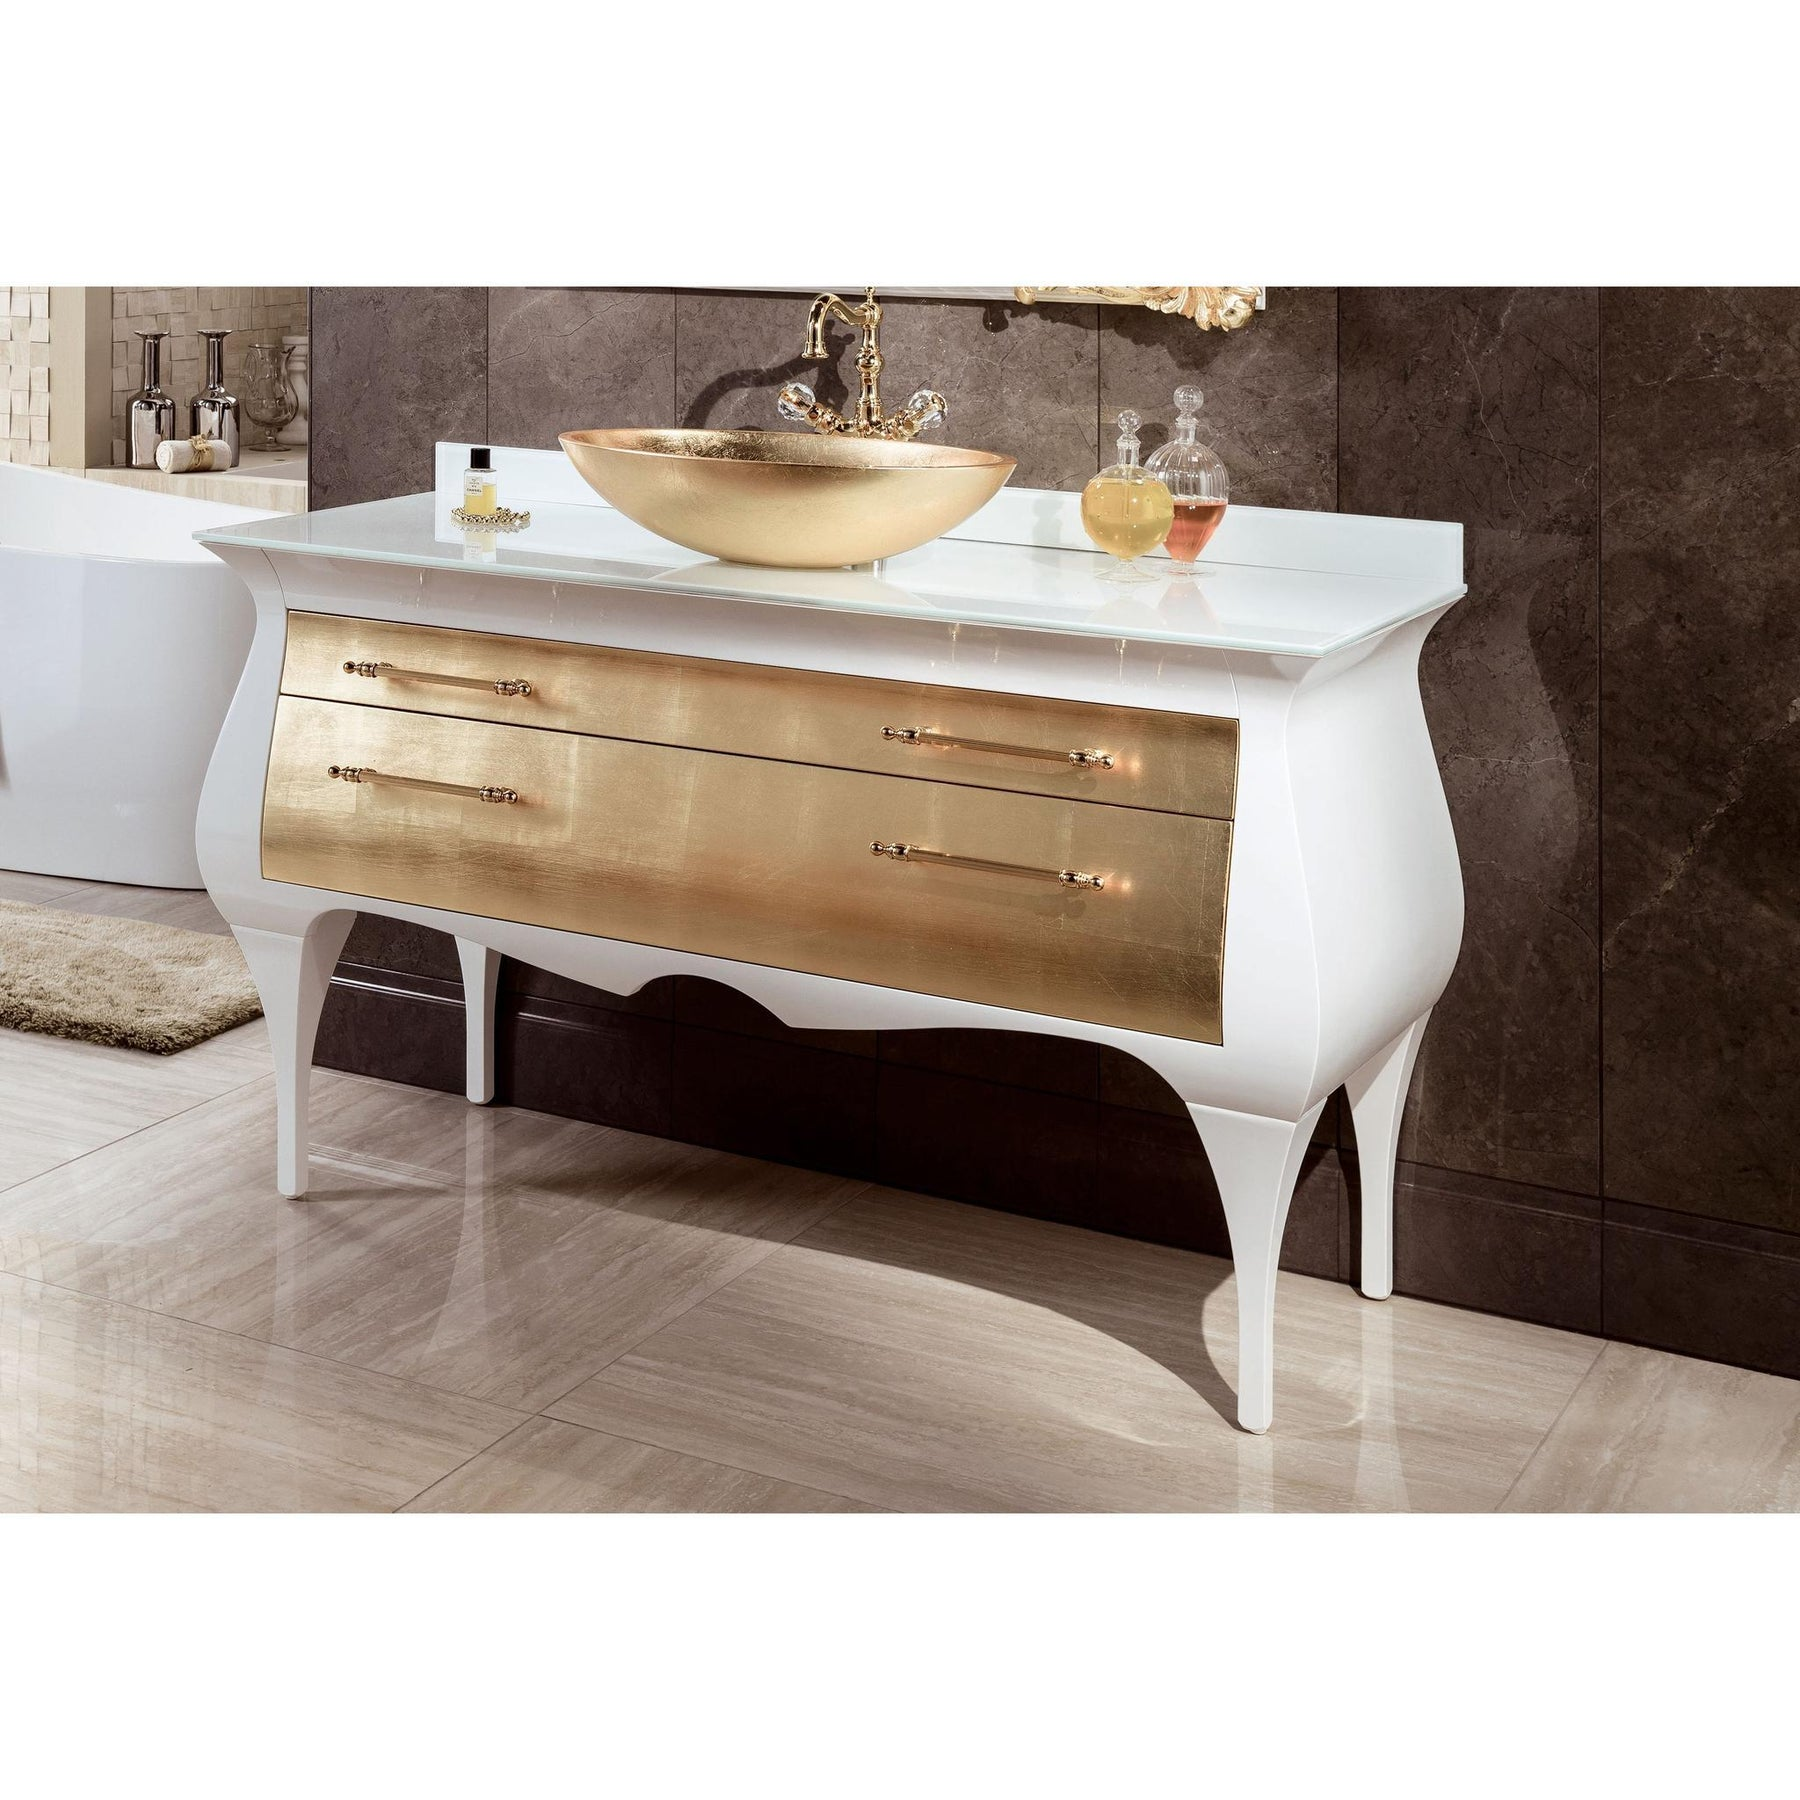 Gm Luxury Rialto 55 5 Master Bathroom Vanity Gold Leaf Cabinet With Vessel Sink Gm Luxury Bath Collection Bathroom Vanities And Sink Consoles 13000 00 14000 00 2 Drawers 54 To 60 Inches Above